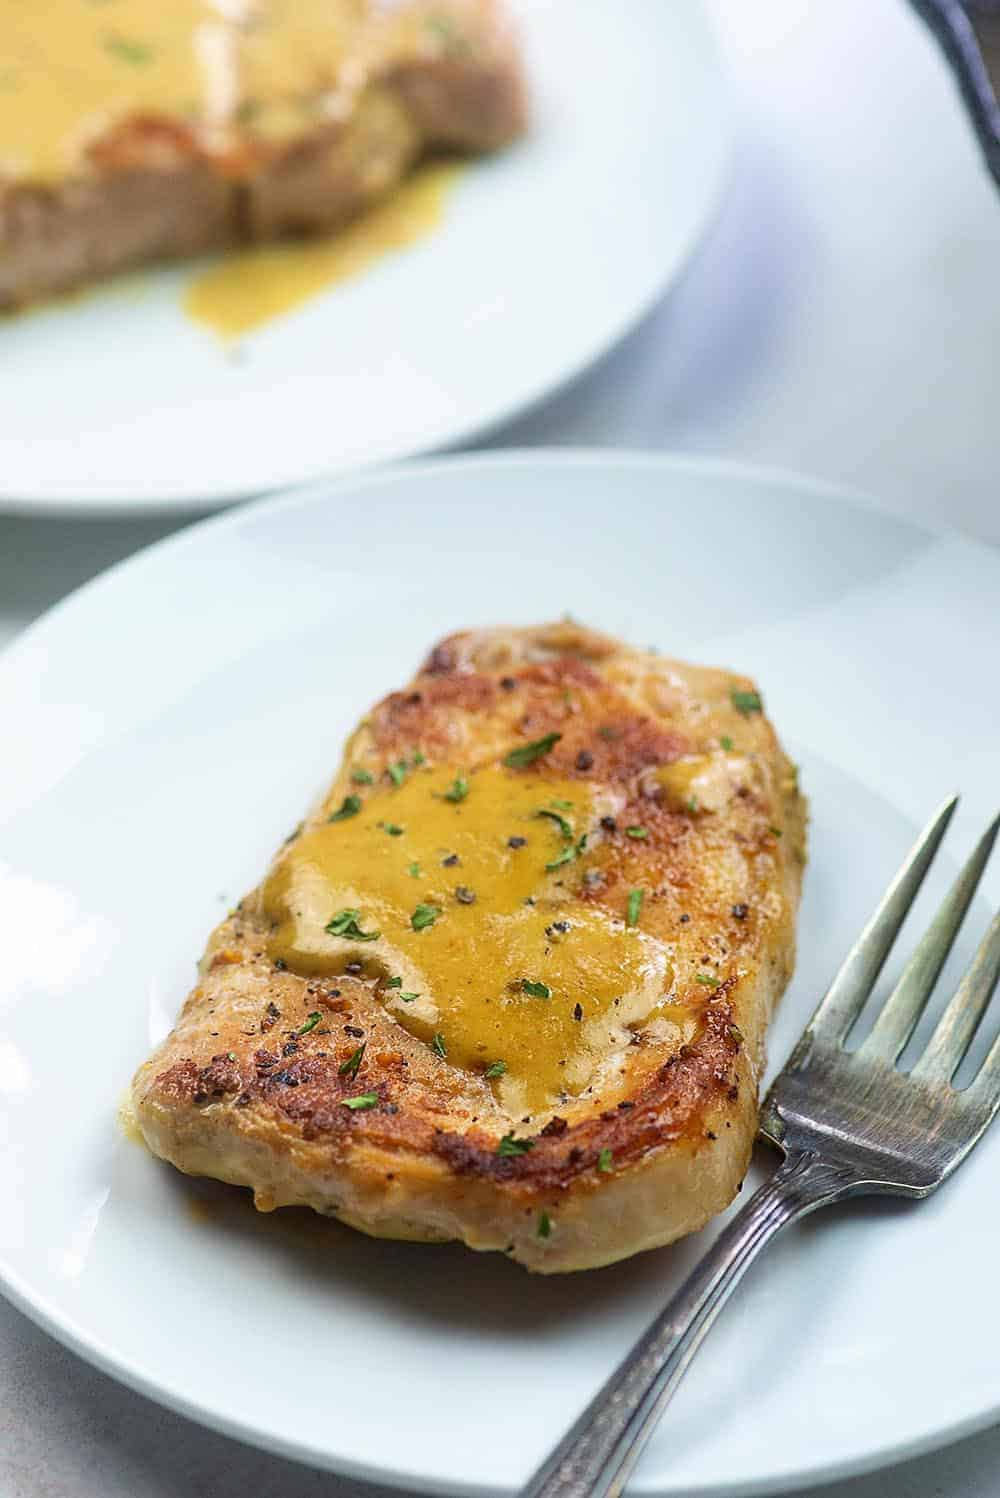 pork chop covered in creamy Dijon sauce on a white plate